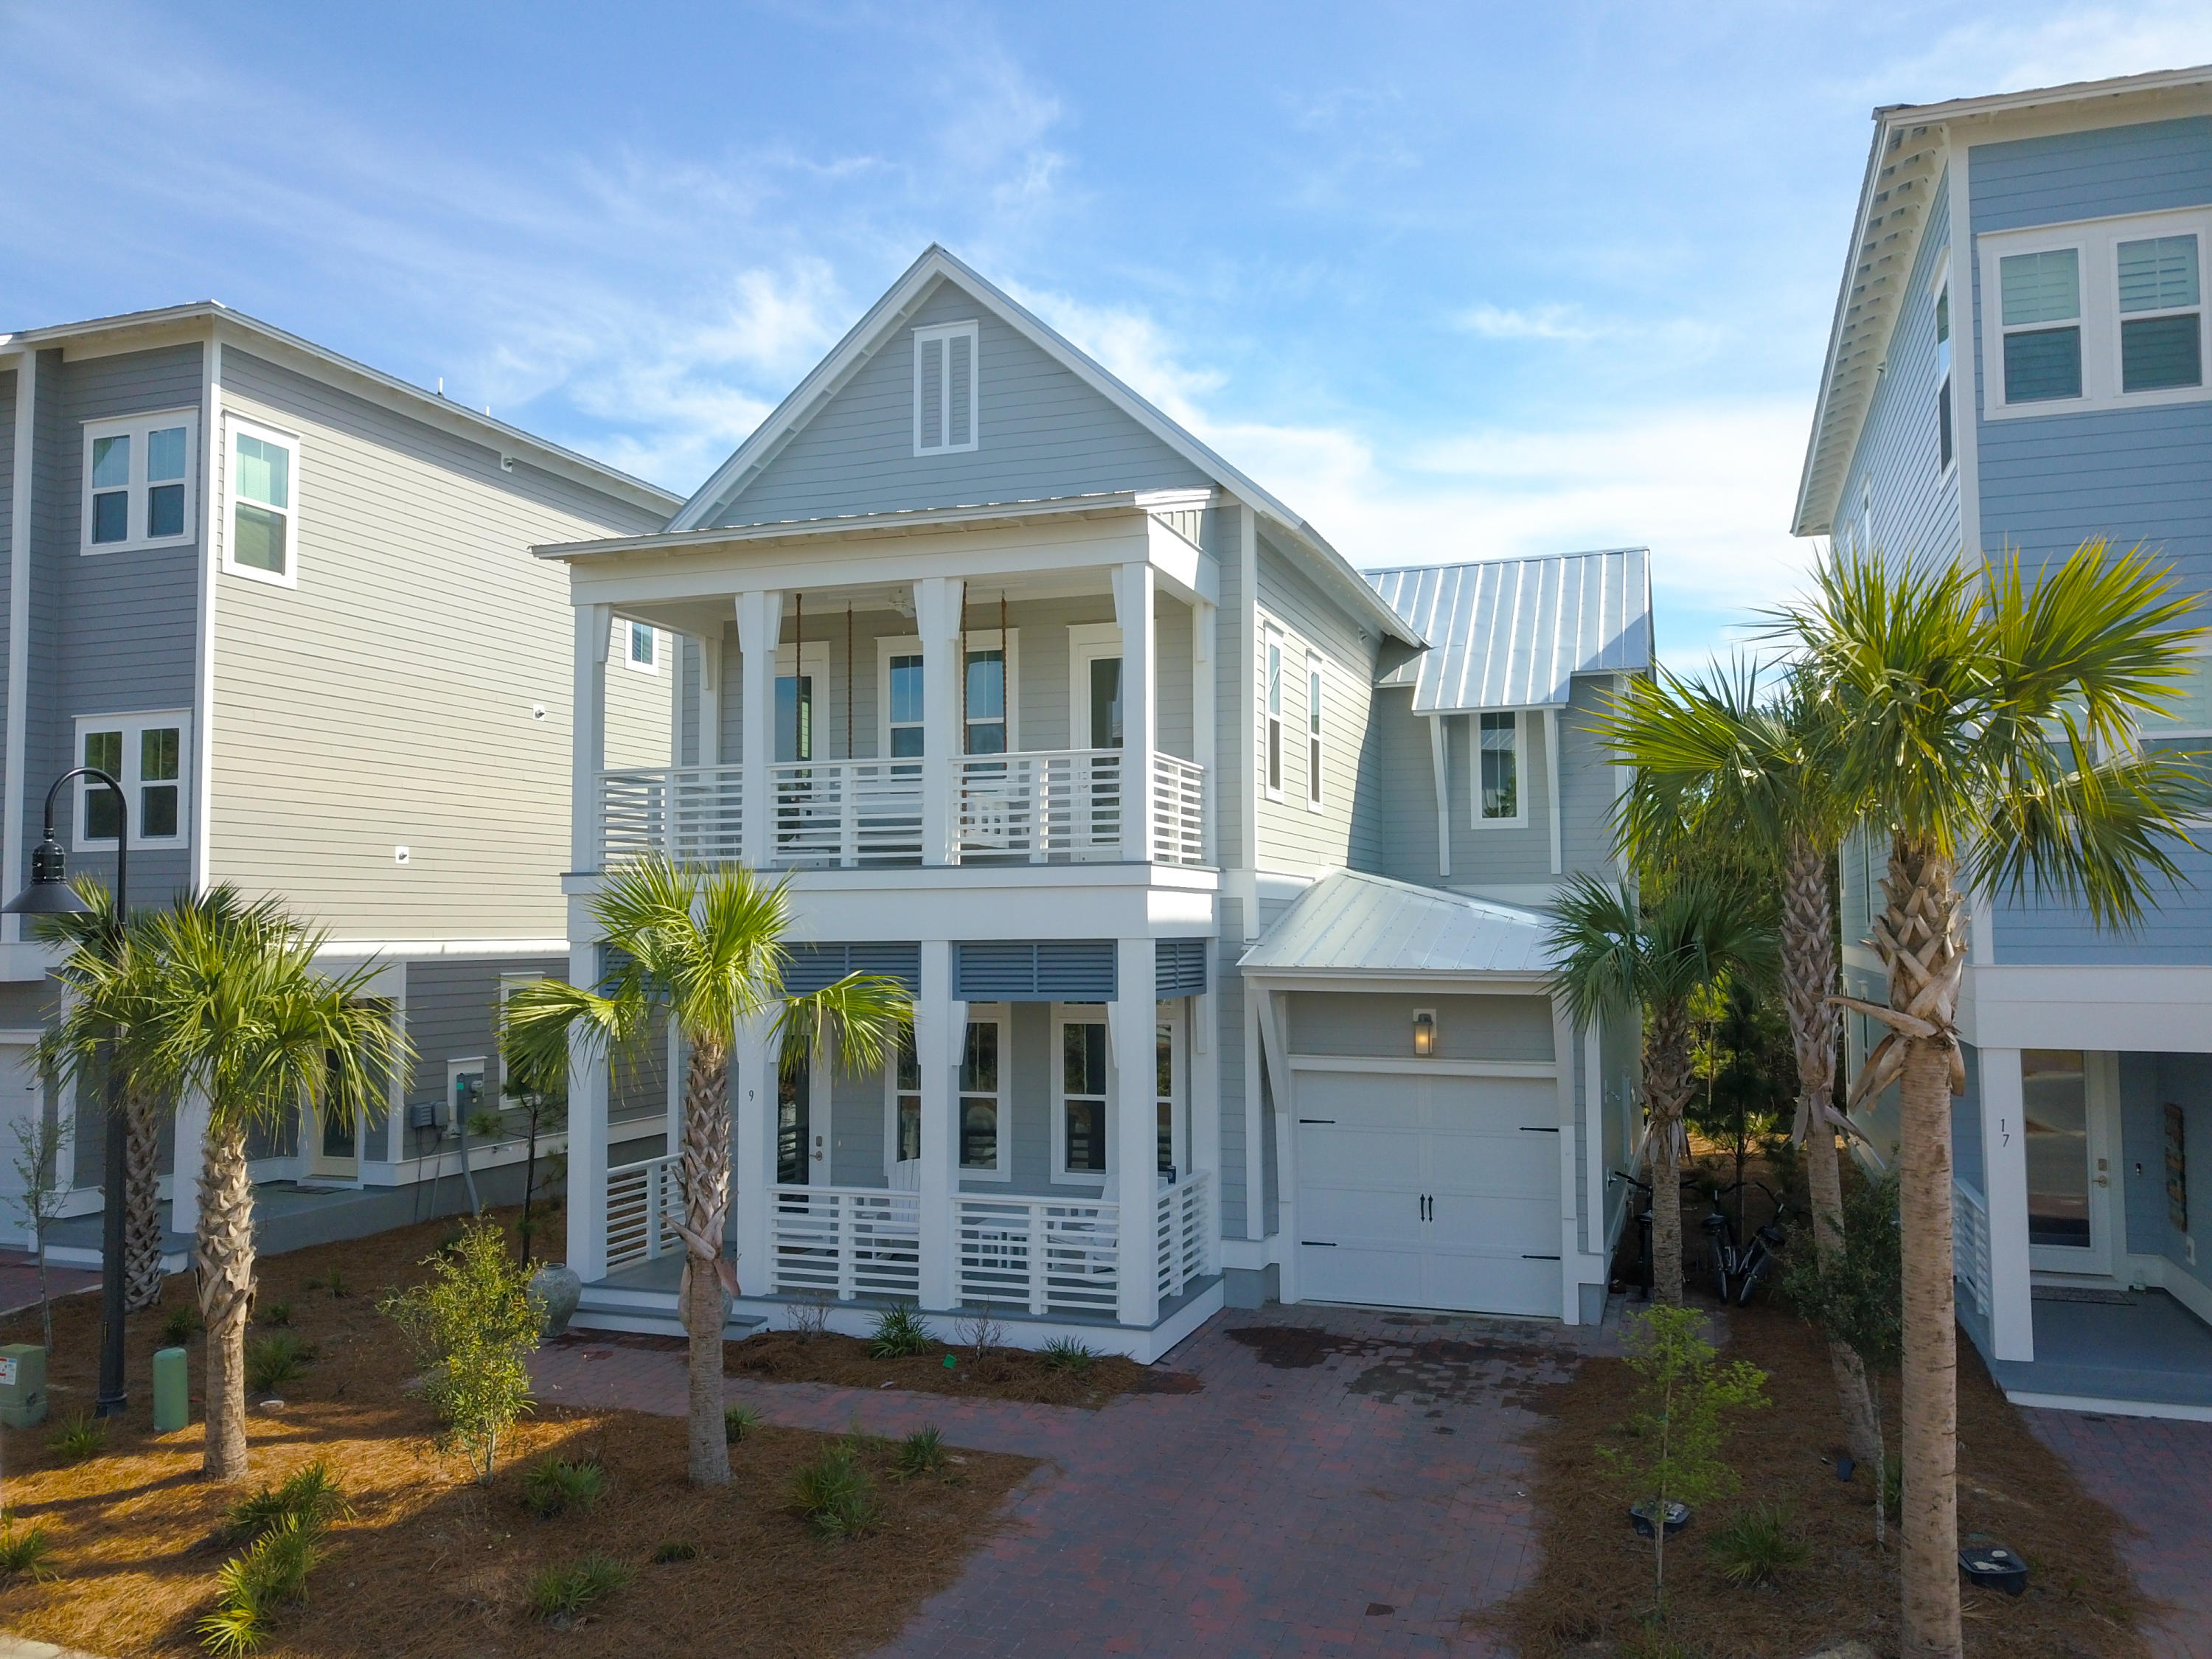 Photo of home for sale at 9 Siasconset, Inlet Beach FL